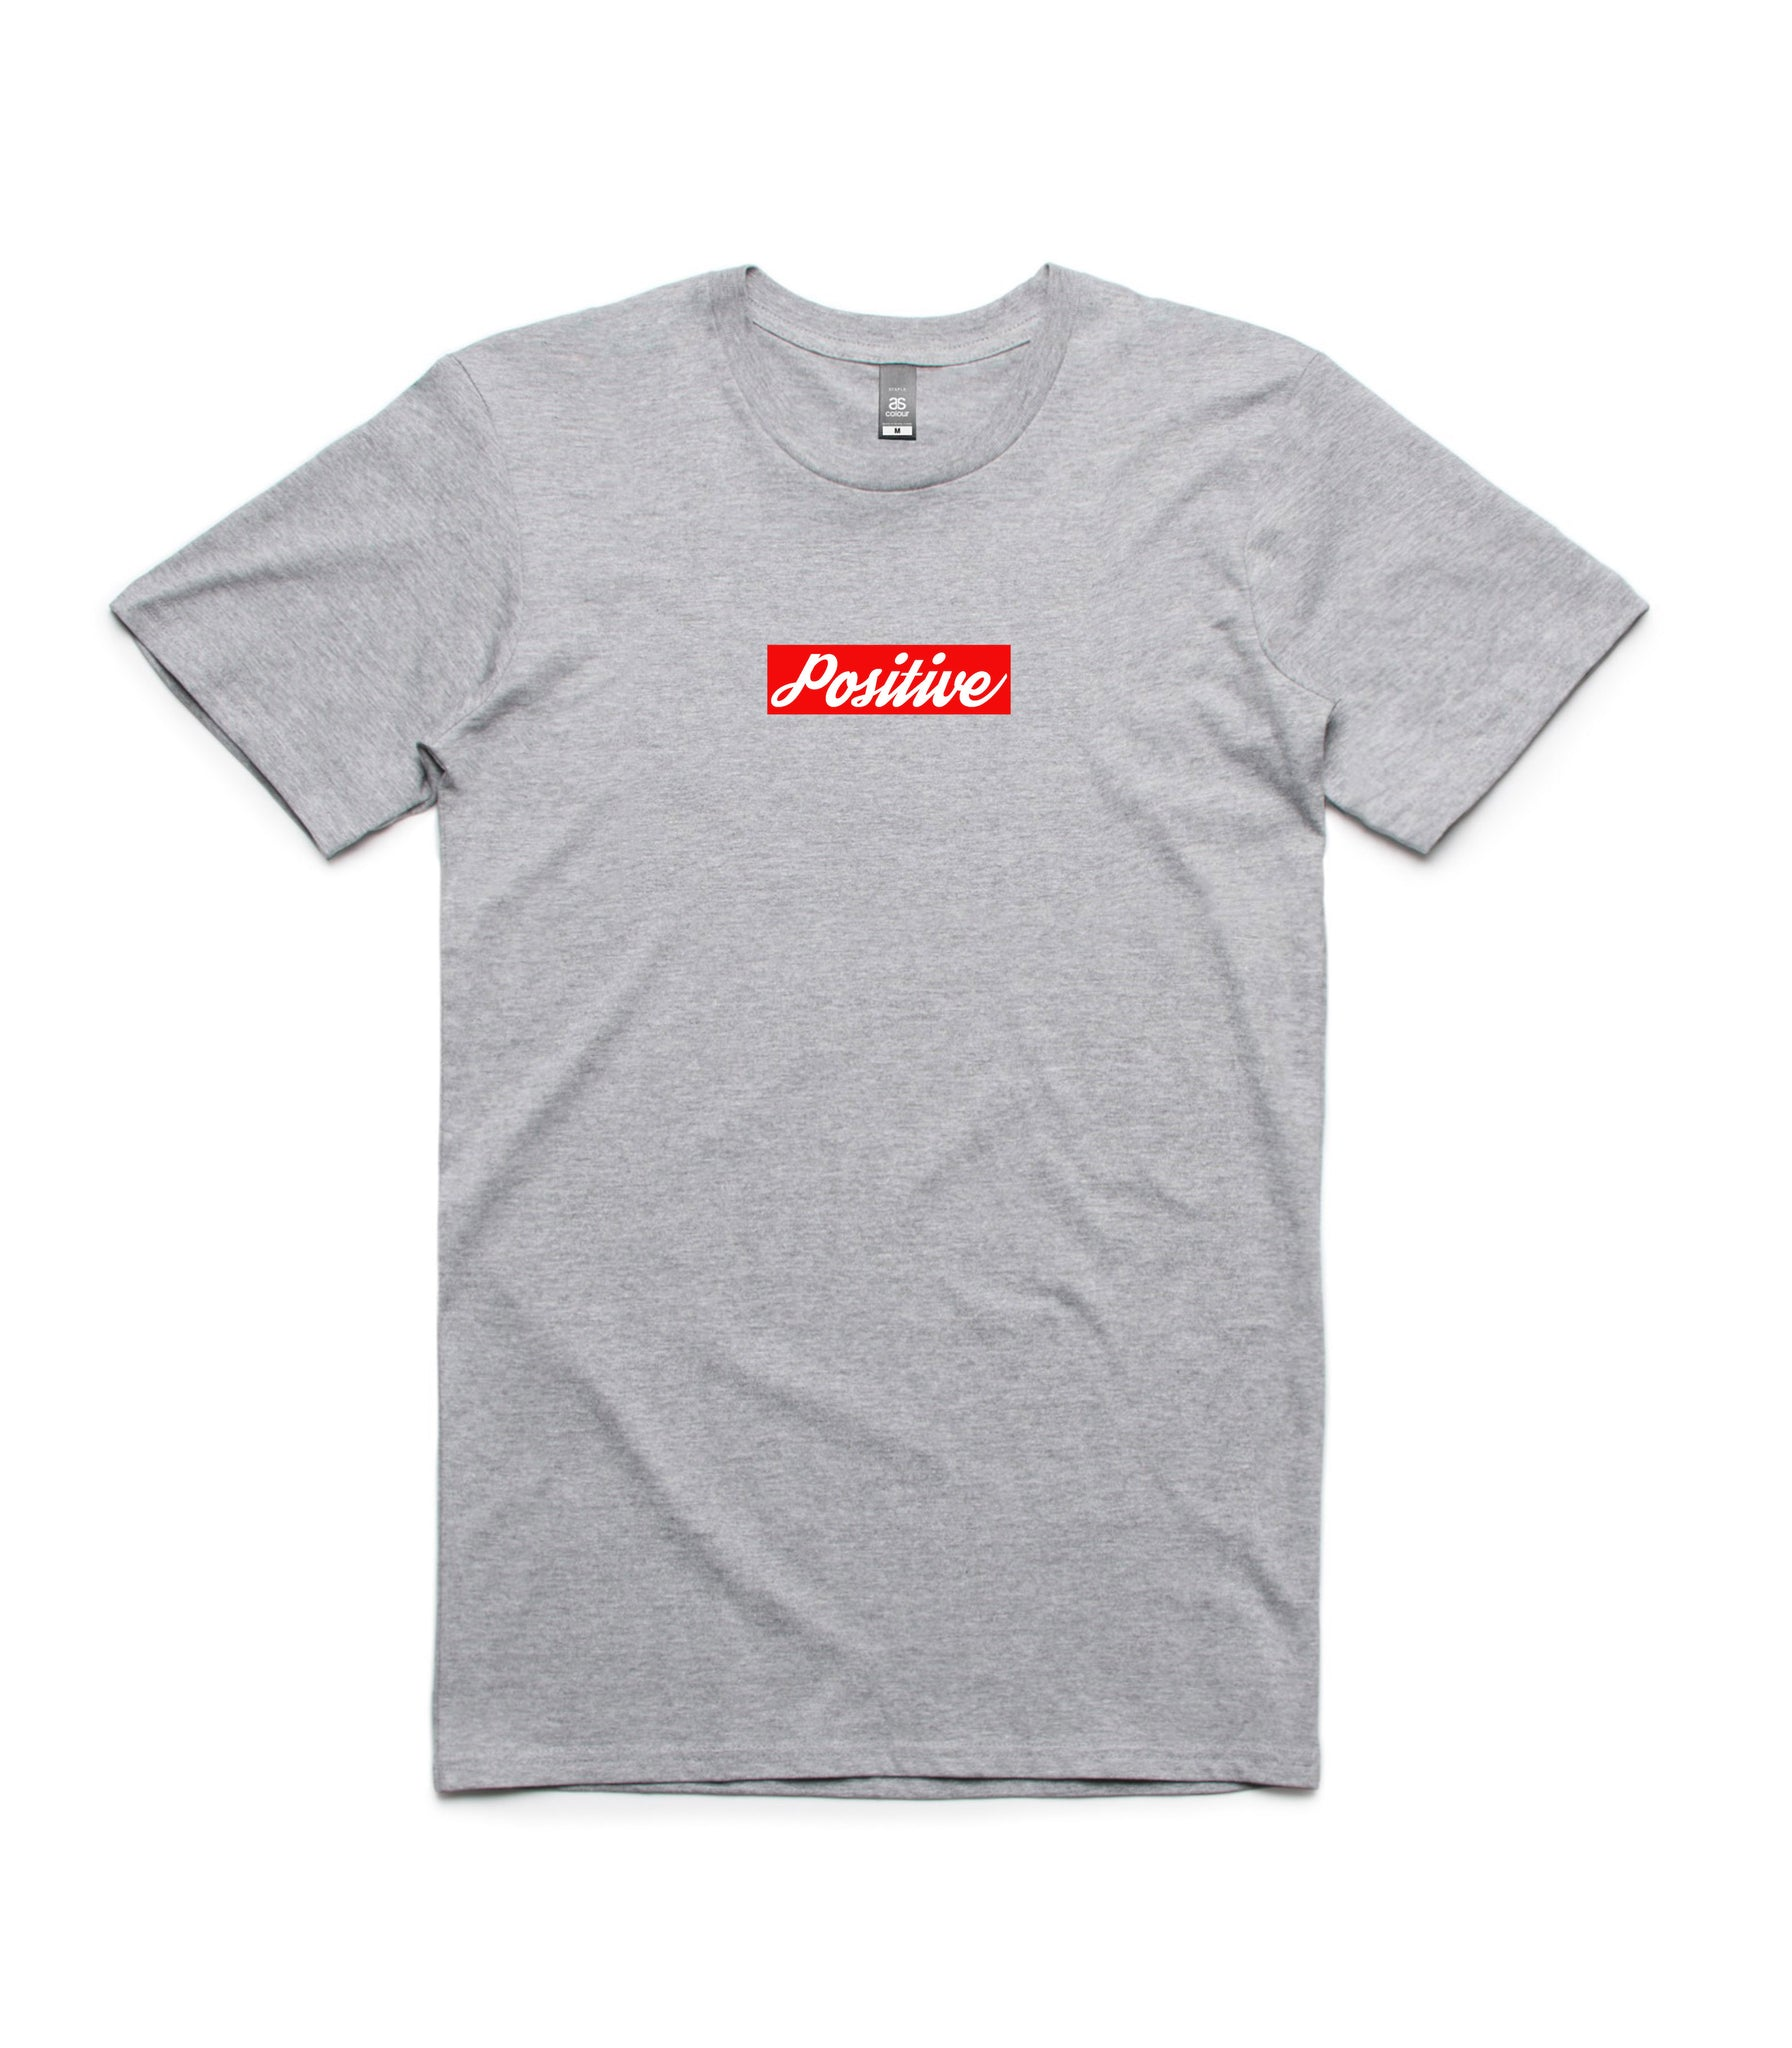 Redbox positive t-shirt